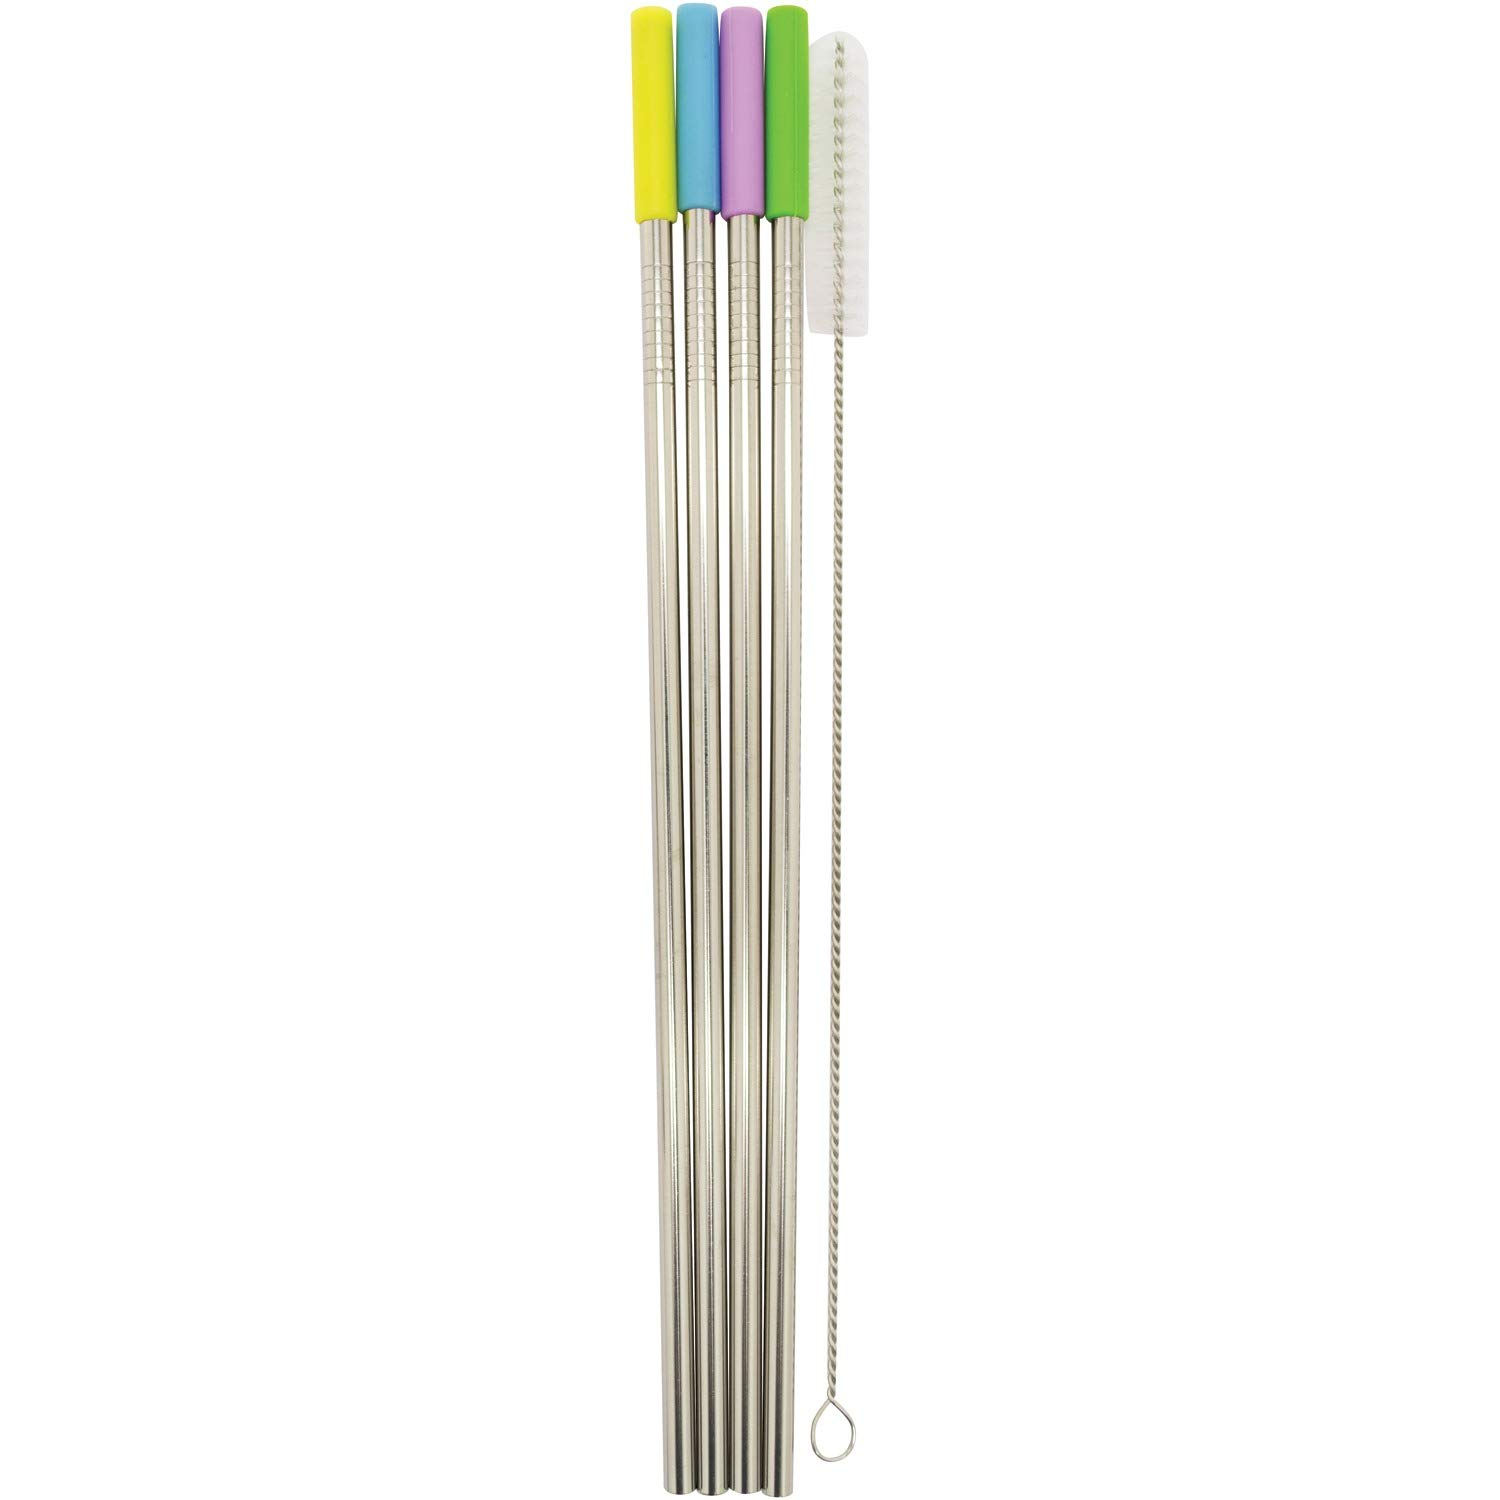 Starfrit T092848 Stainless Steel Reusable Straws with Silicone Tips, 4-Pack (Straight), One Size, Silver